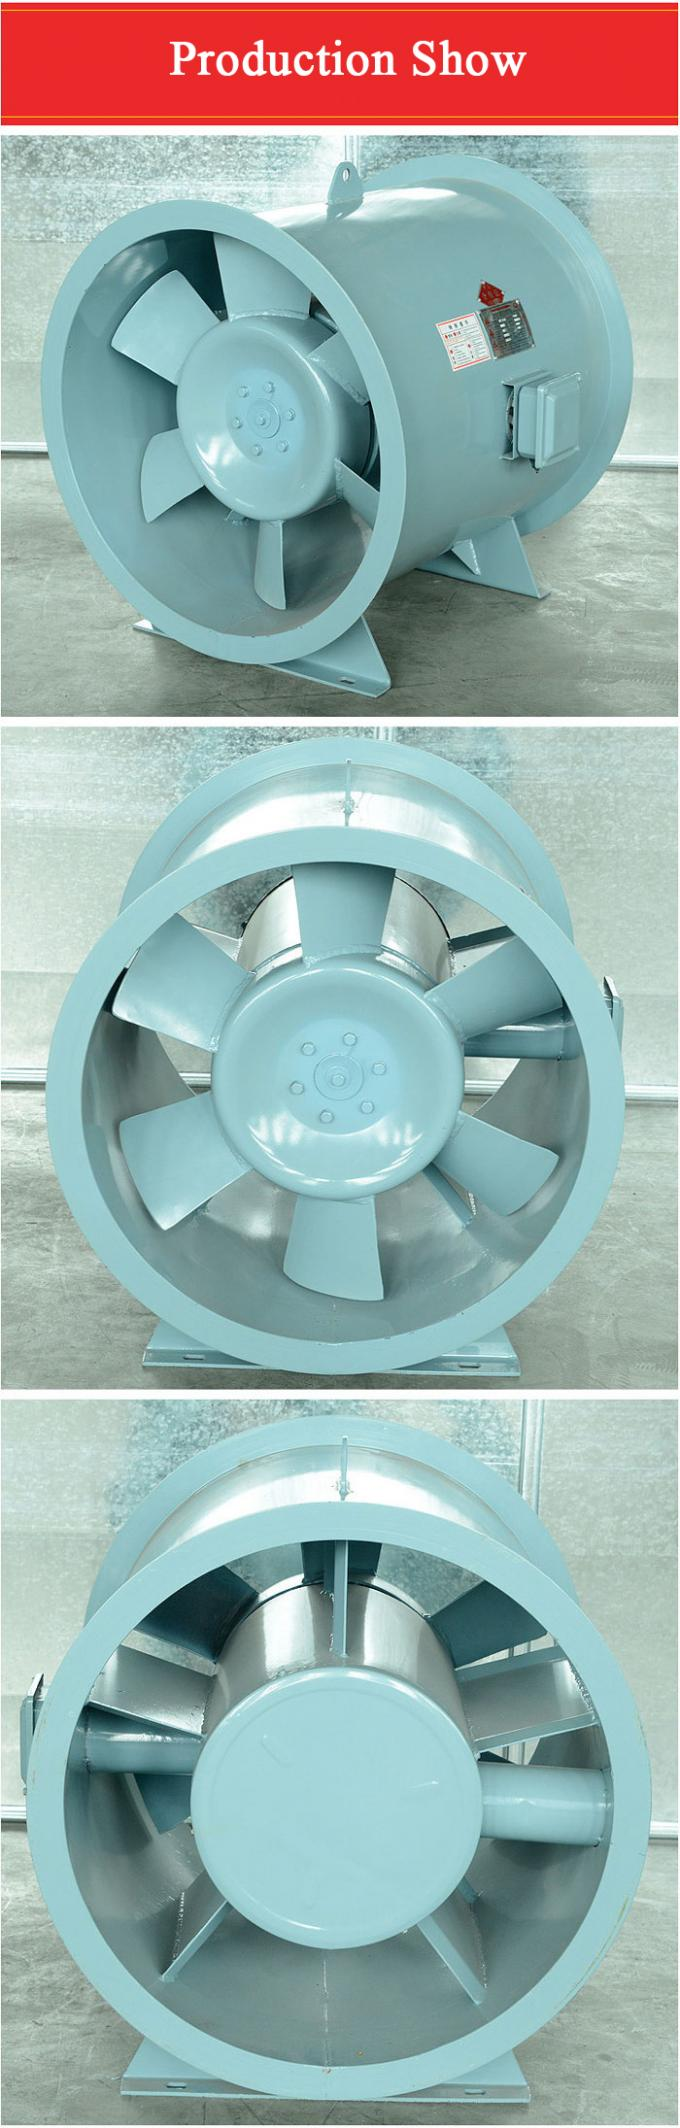 Large Flow Hot Air Axial Ventilation Fan High Temperature Fire Smoke Exhaust